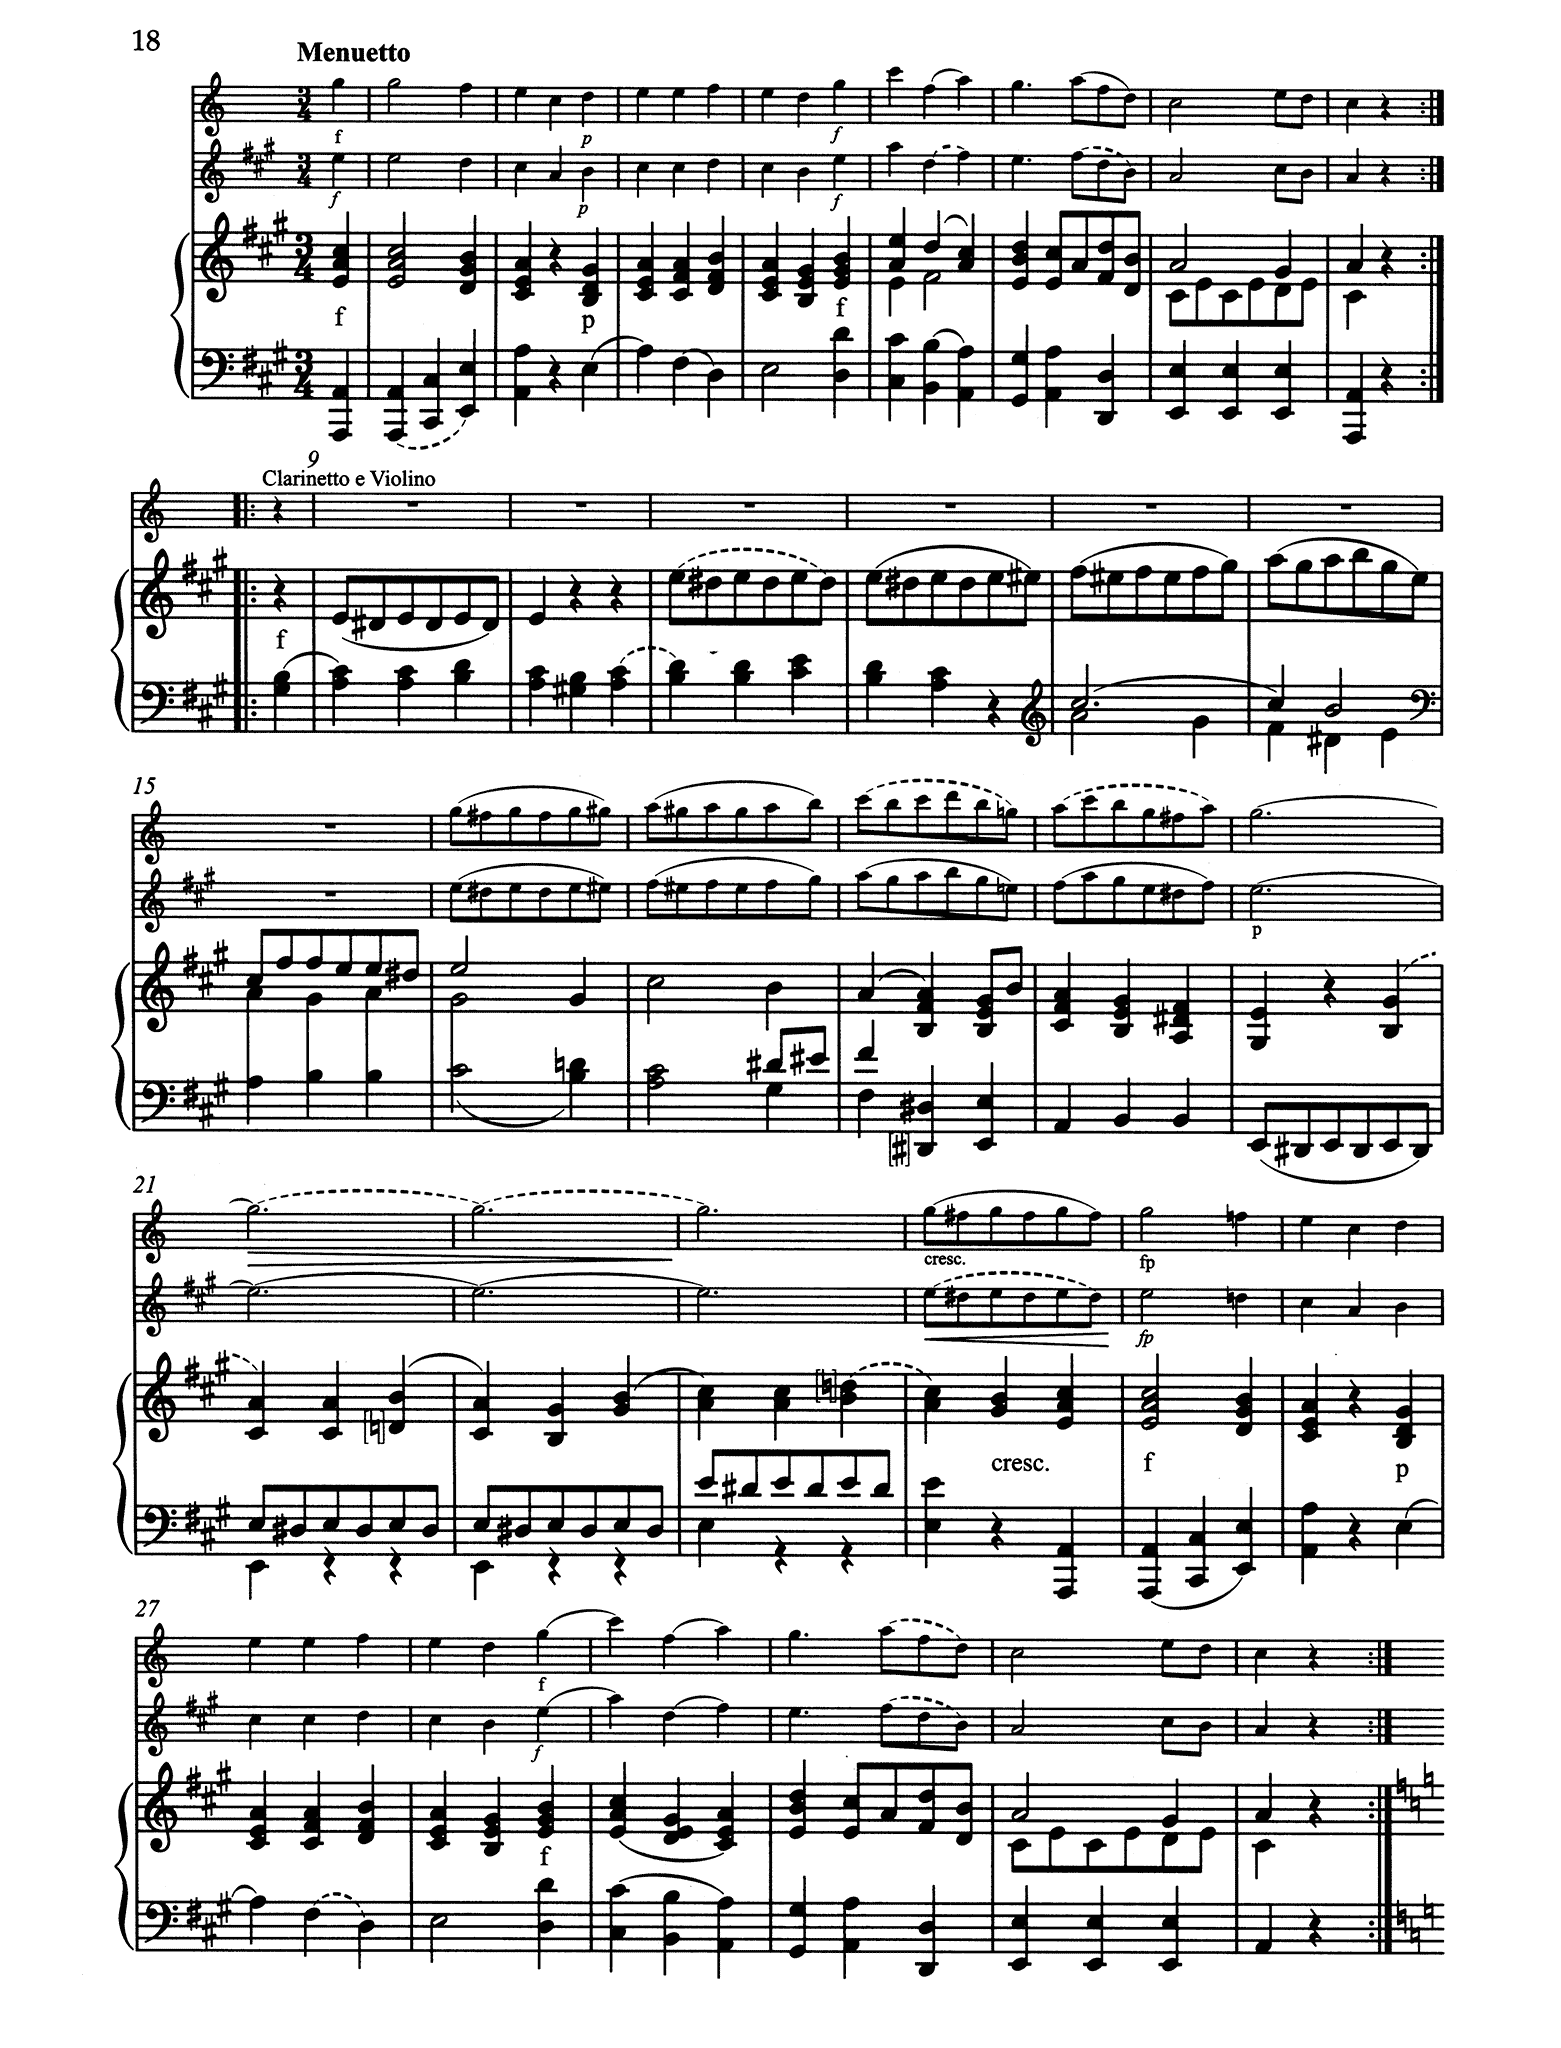 Grande Sonate after the Clarinet Quintet, K. 581 - Movement 3